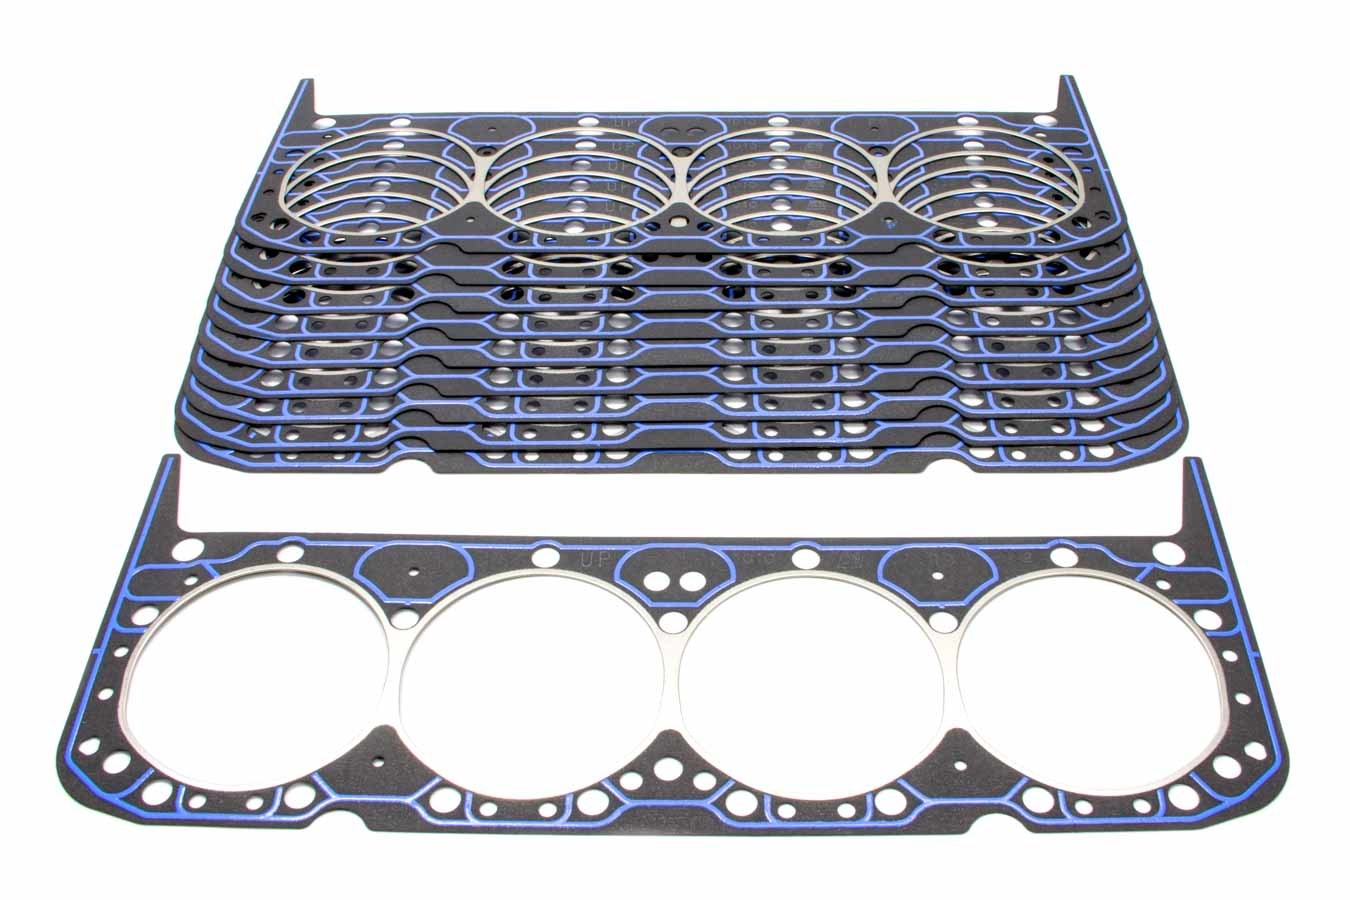 Fel-Pro 1010B Cylinder Head Gasket, 4.166 in Bore, 0.039 in Compression Thickness, Steel Core Laminate, Small Block Chevy, Set of 10